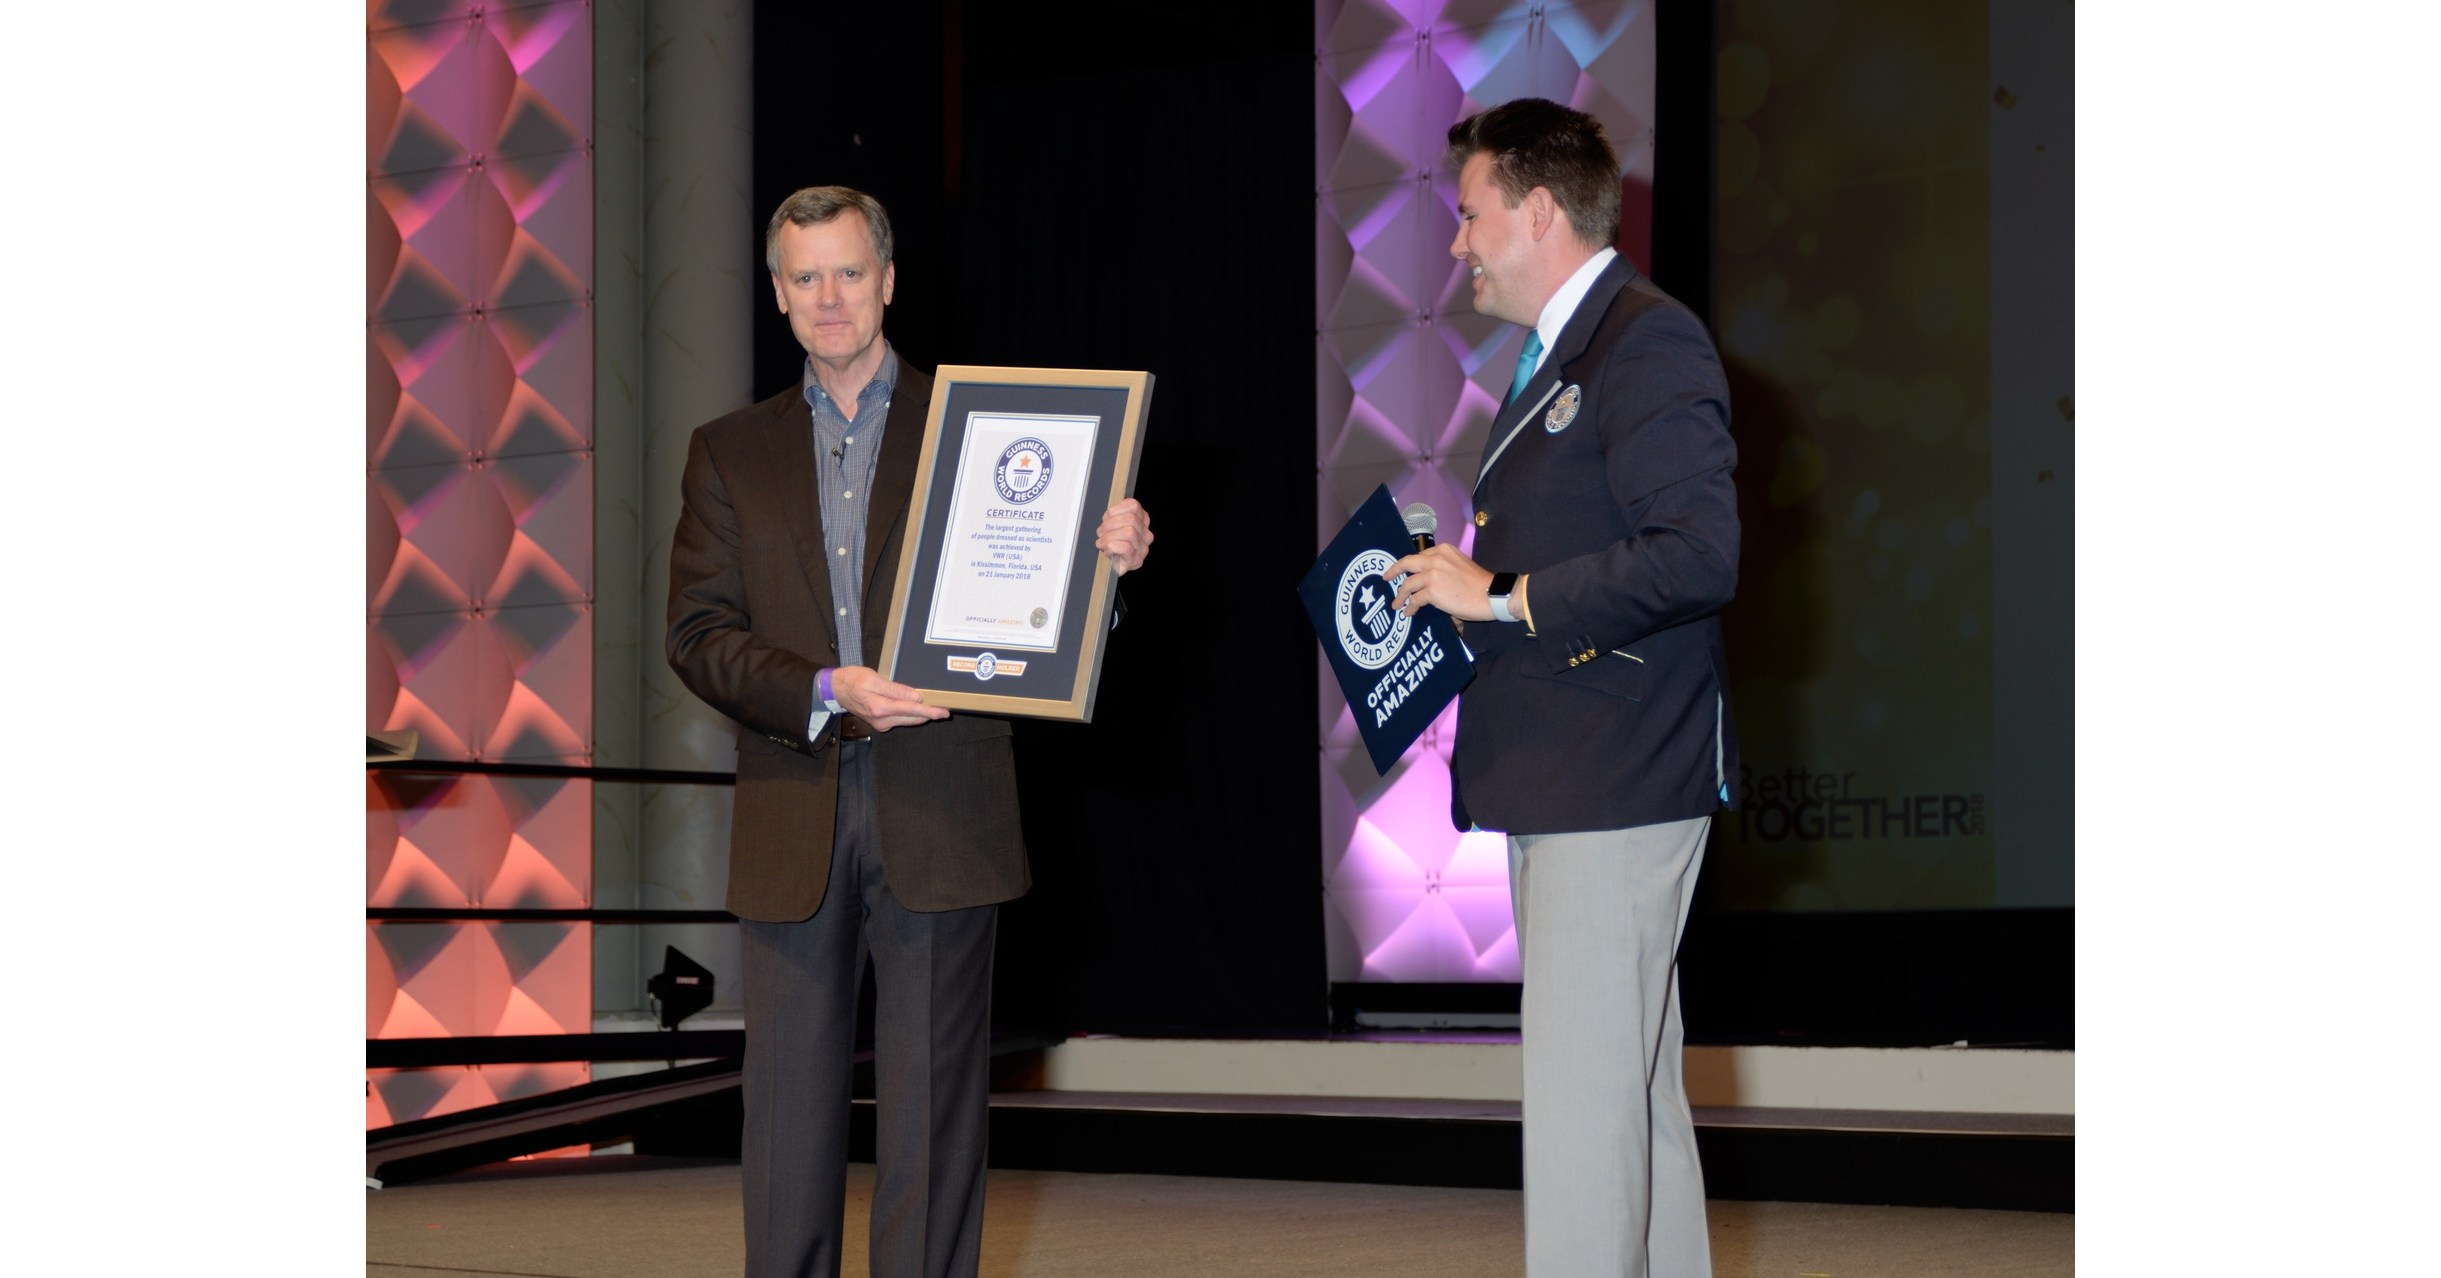 VWR, Part of Avantor, Achieves GUINNESS WORLD RECORDS™ Title